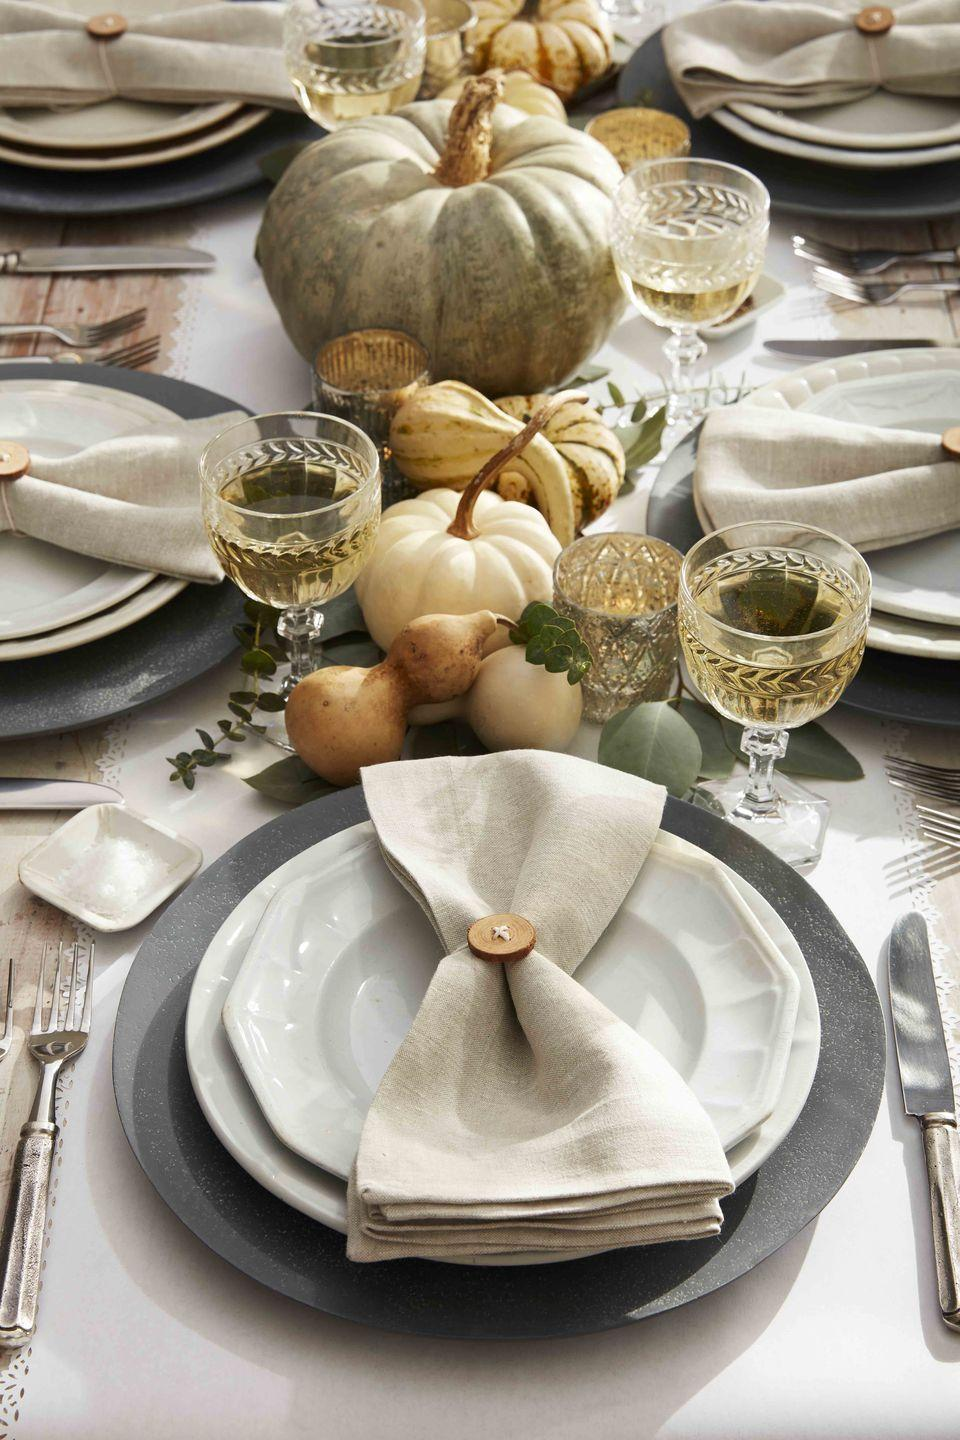 <p>This neutral toned place setting is just cute as a button! <strong><br></strong></p><p><strong>Make the napkin ring:</strong> Either buy wood buttons or drill small holes into small wood rounds. Thread holes with white twine and tie around napkins. </p>